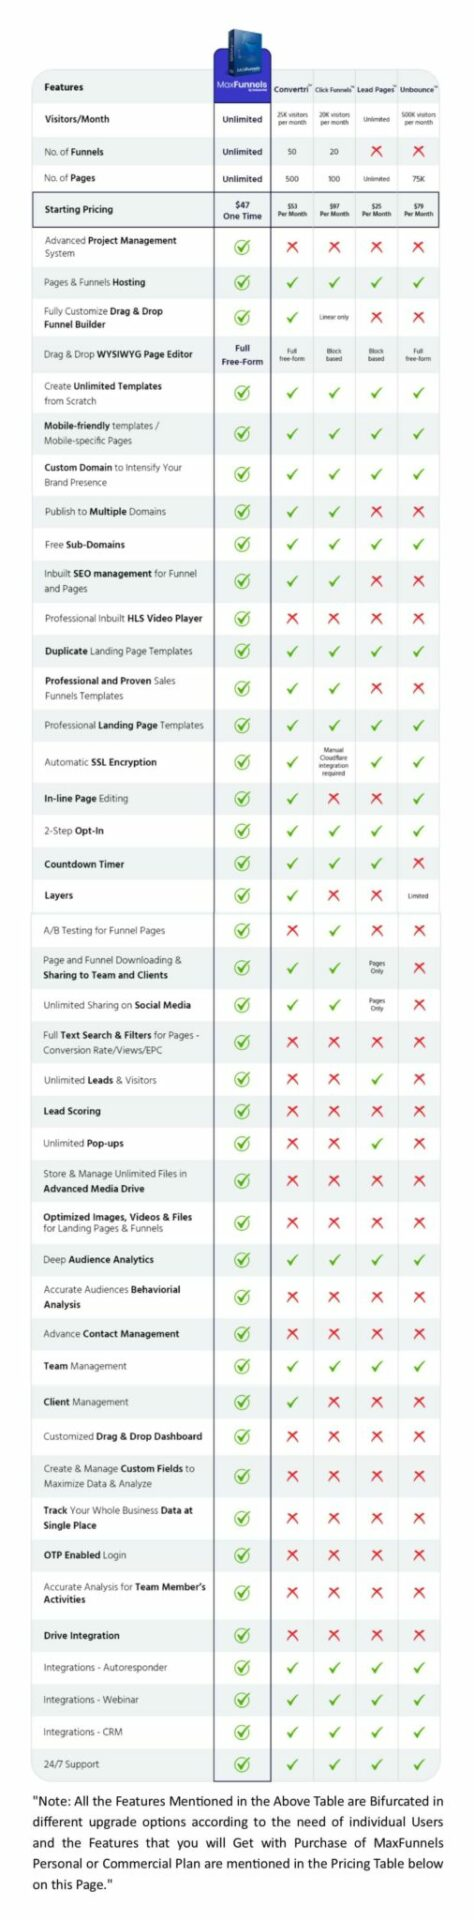 MaxFunnels VS ClickFunnels VS LeadPages